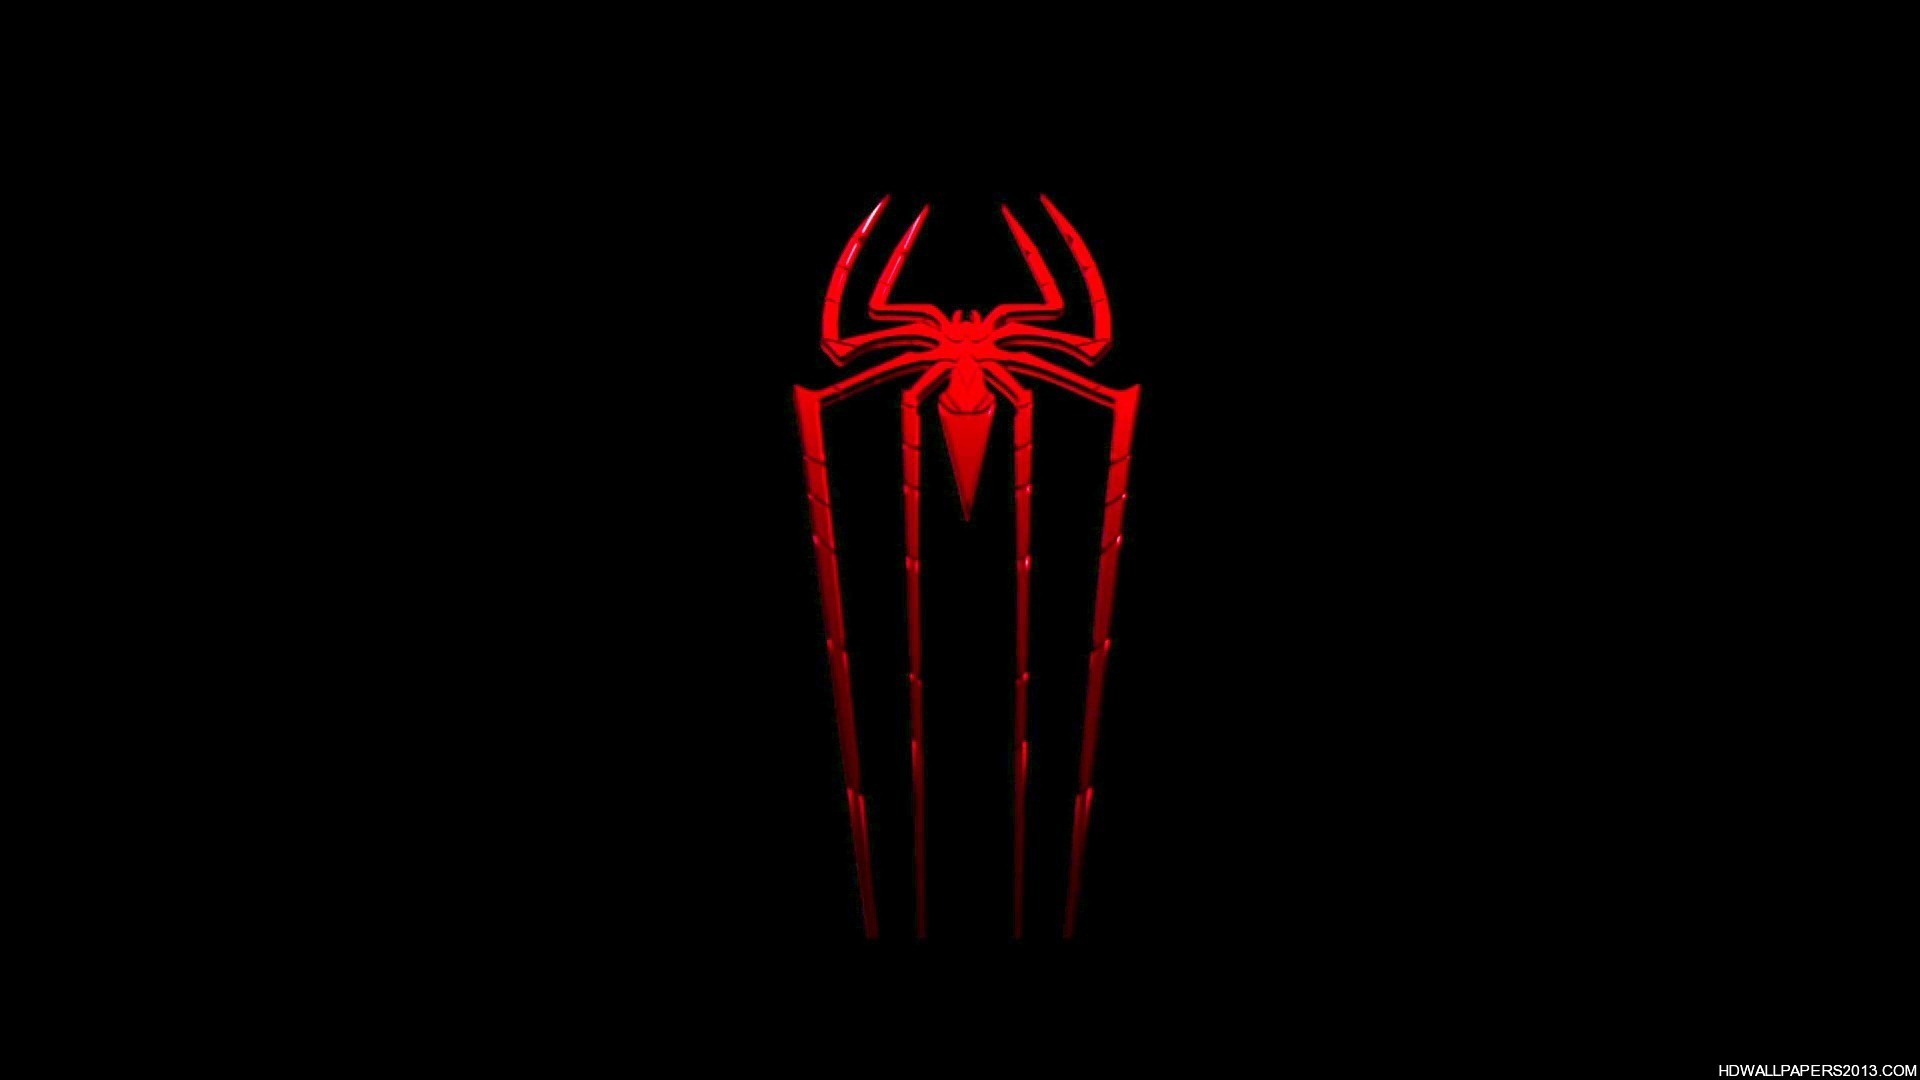 The amazing spider man logo - photo#1